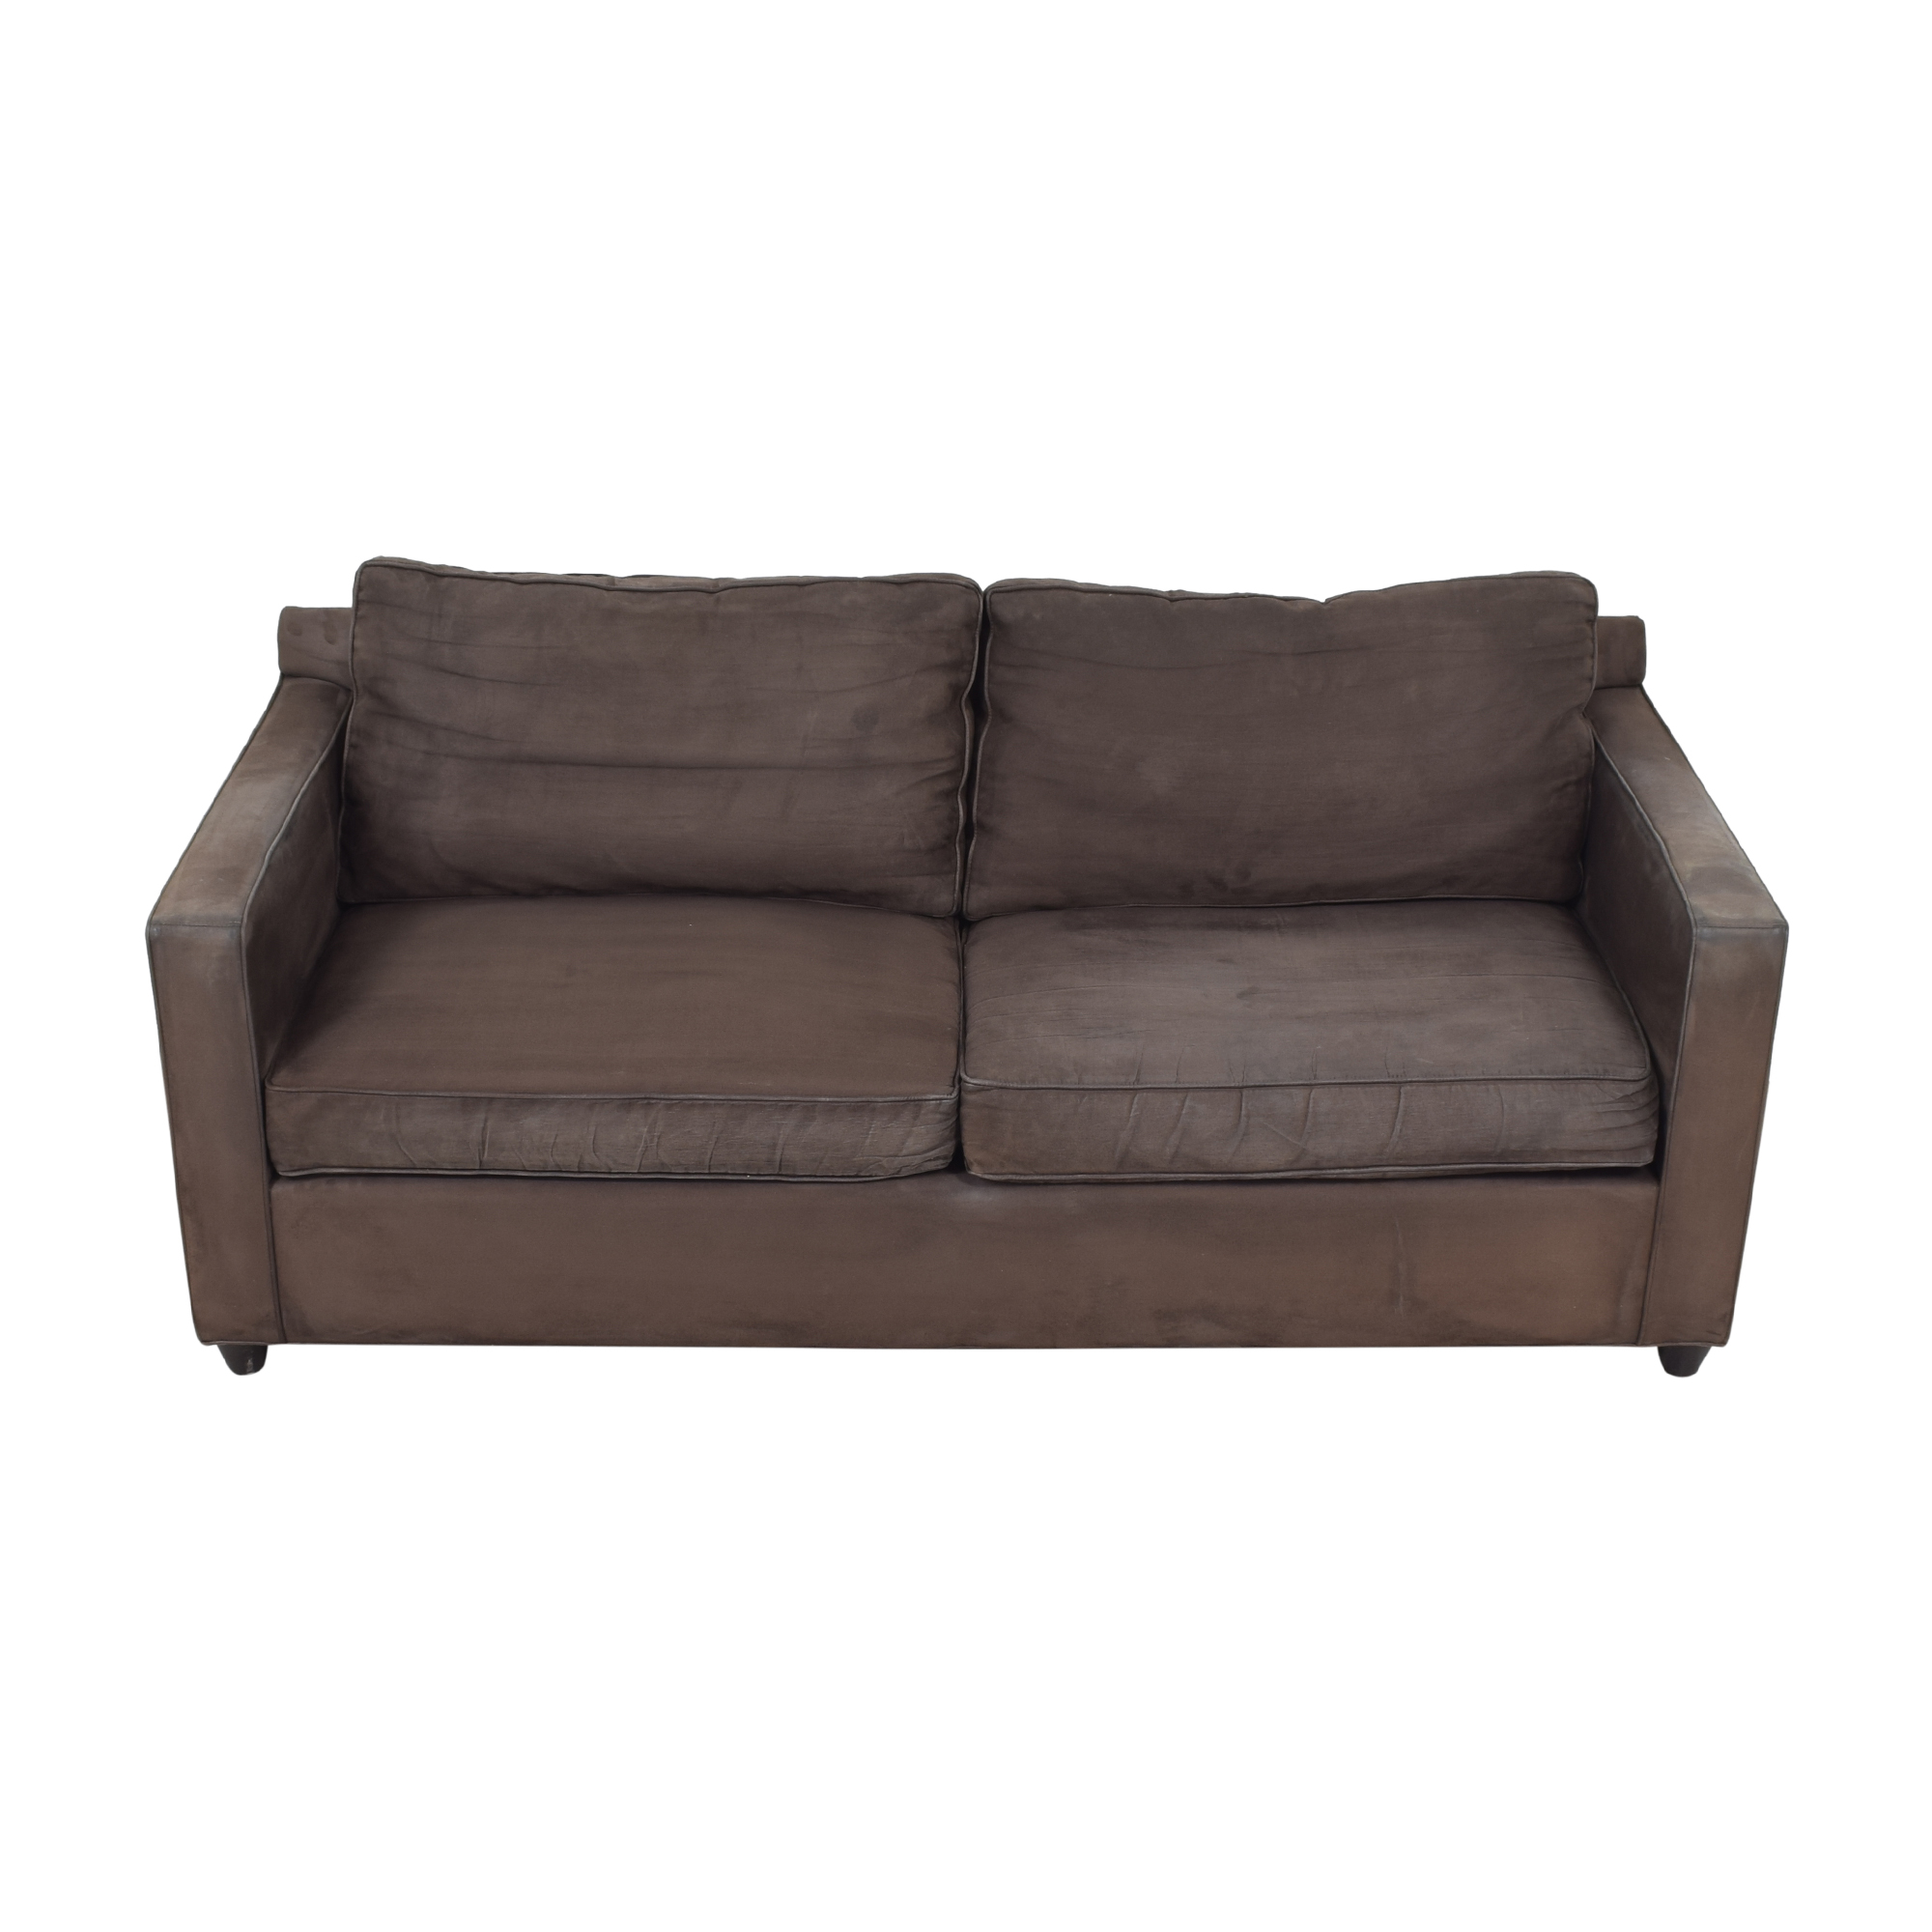 Crate & Barrel Troy Sofa sale